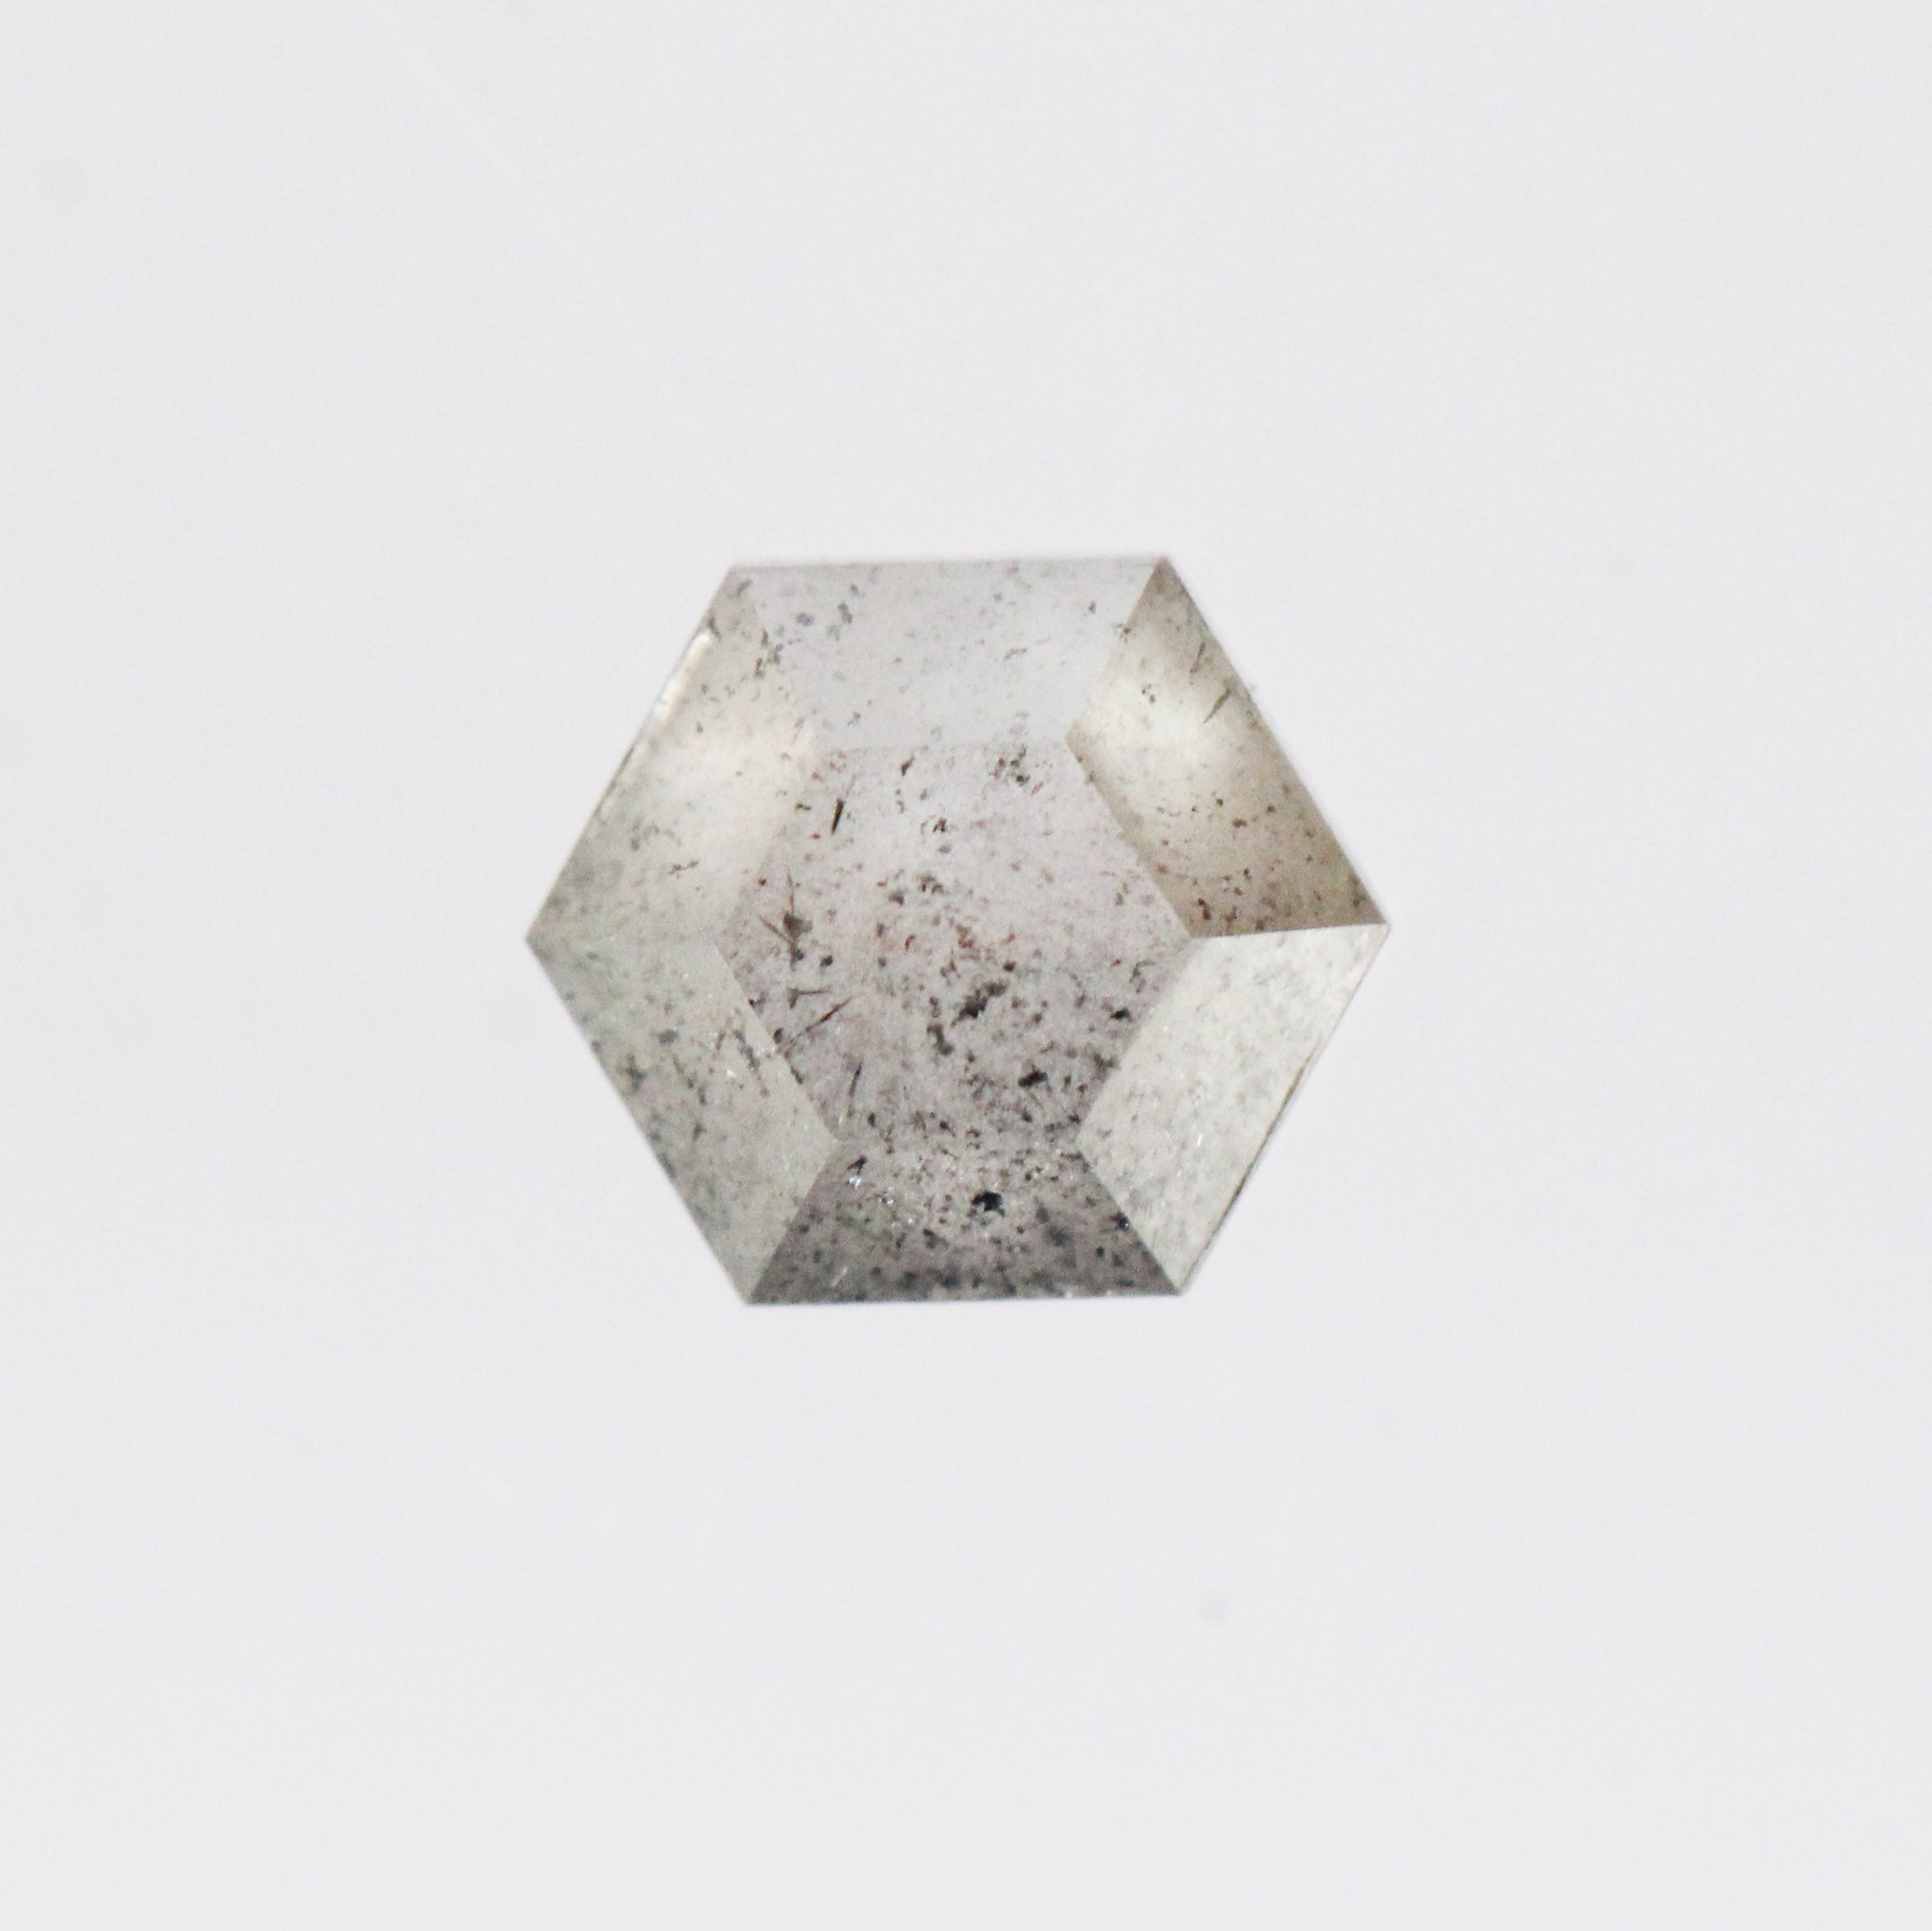 .83 Carat Hexagon Celestial Diamond® for Custom Work - Inventory Code LGH83 - Celestial Diamonds ® by Midwinter Co.